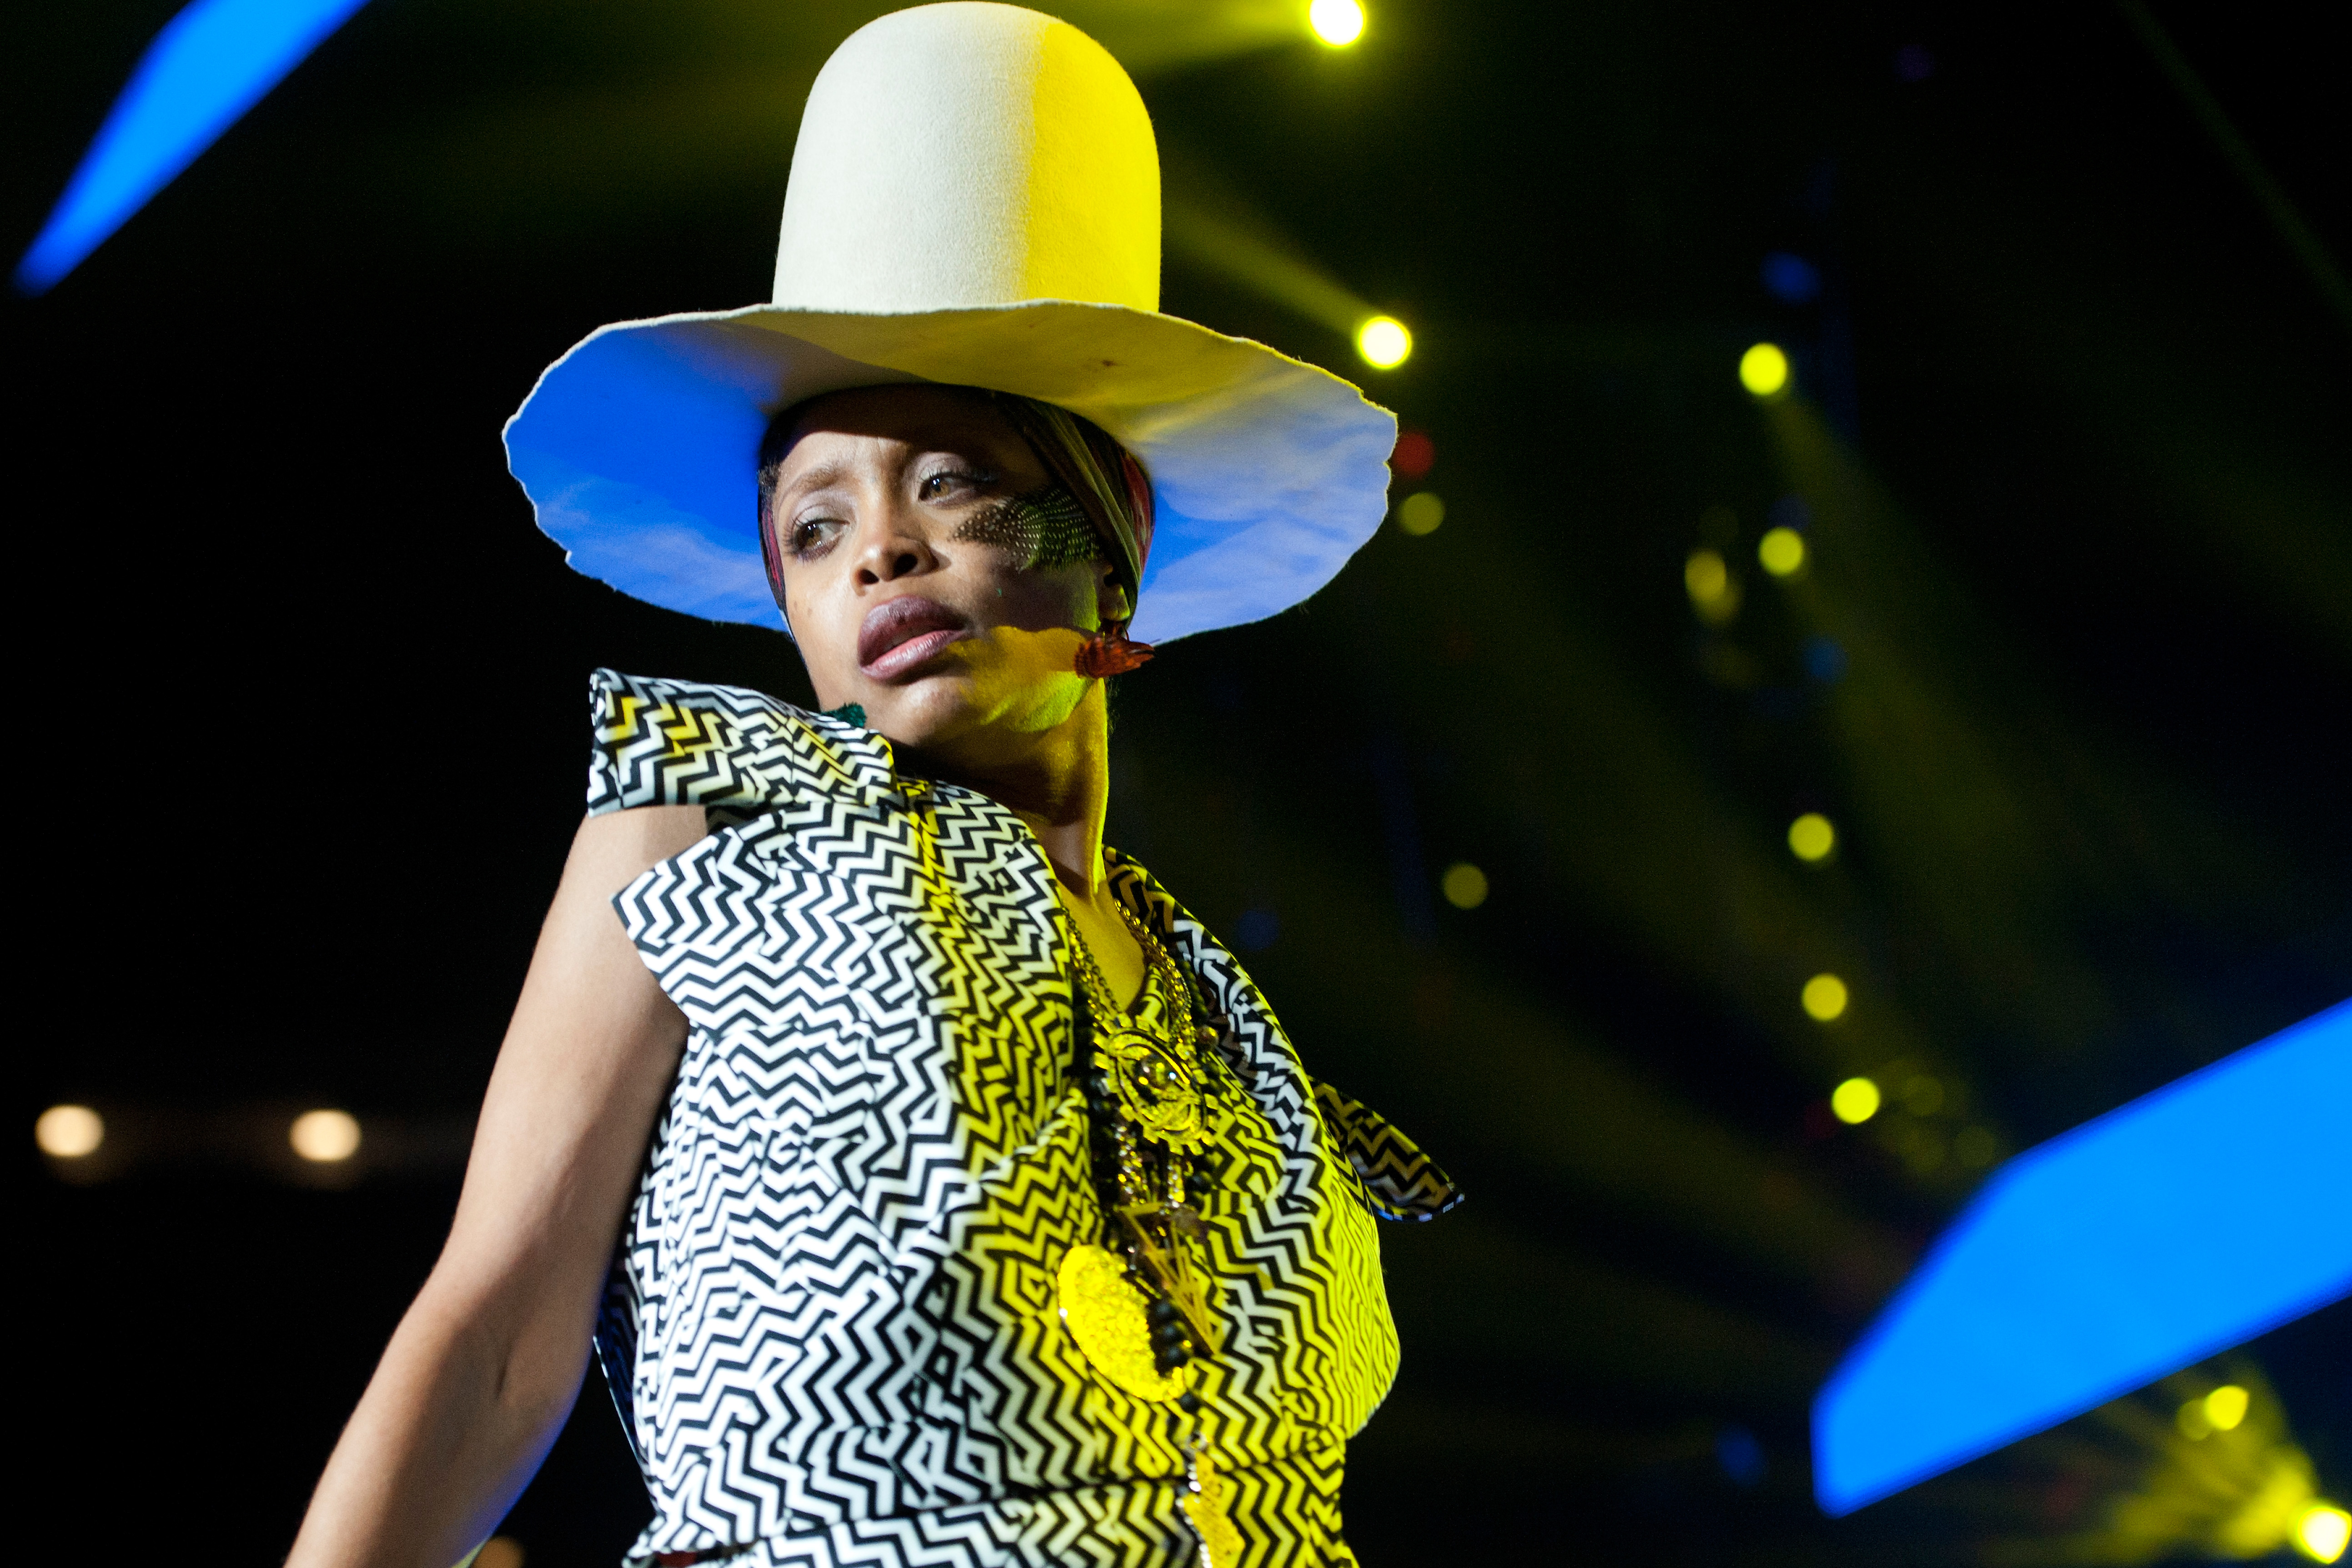 Erykah Badu performs during the 2014 Essence Music Festival on July 6, 2014 in New Orleans, Louisiana.